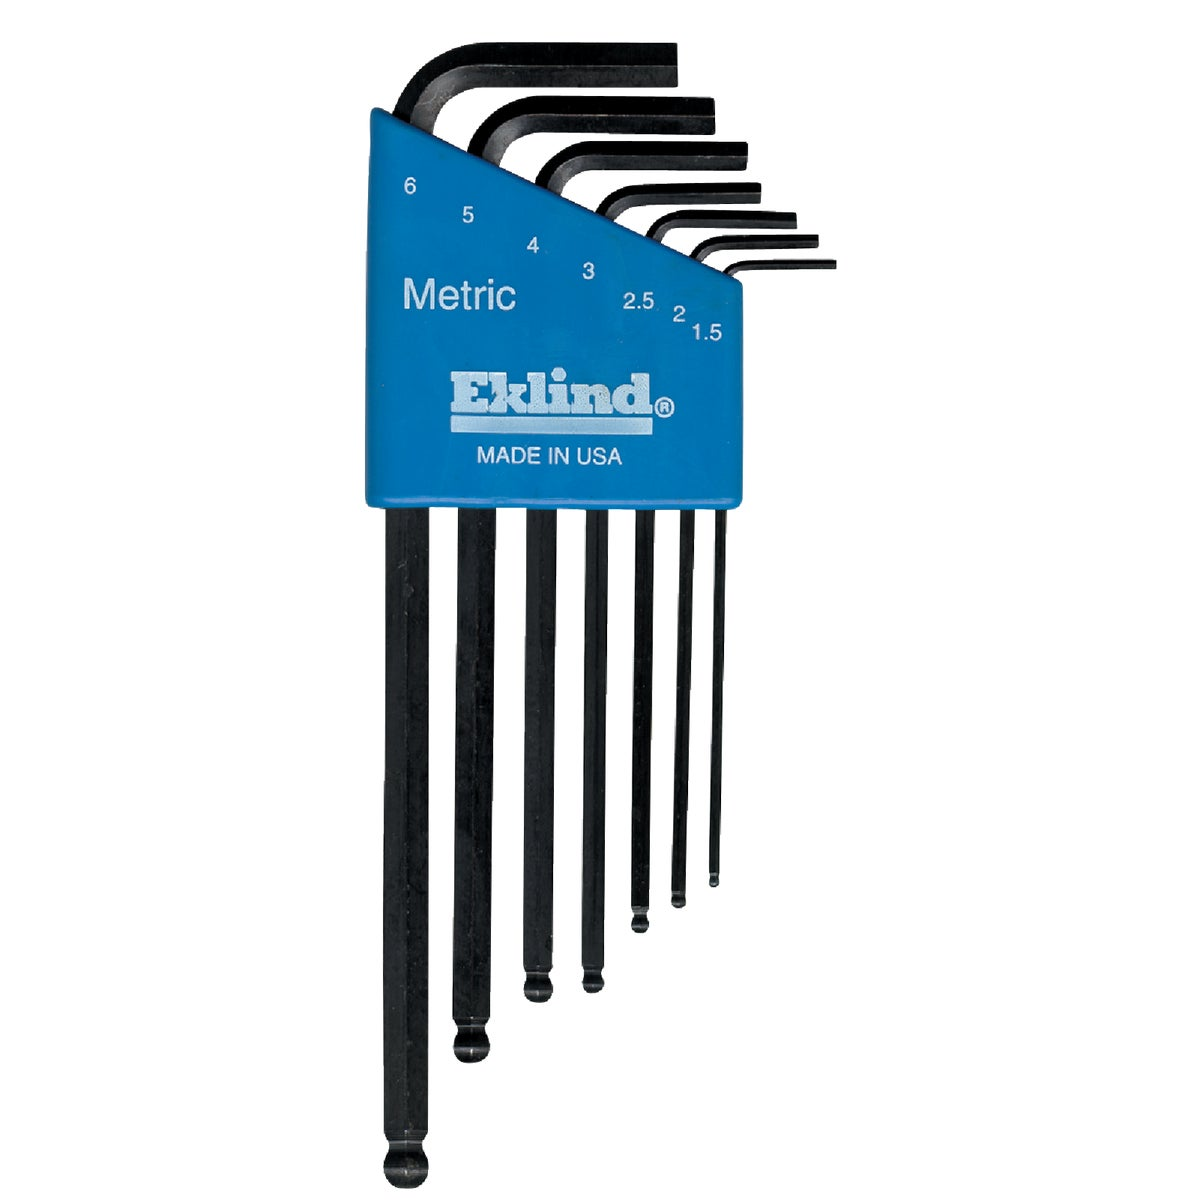 7PC MET BALL END HEX KEY - 13607 by Eklind